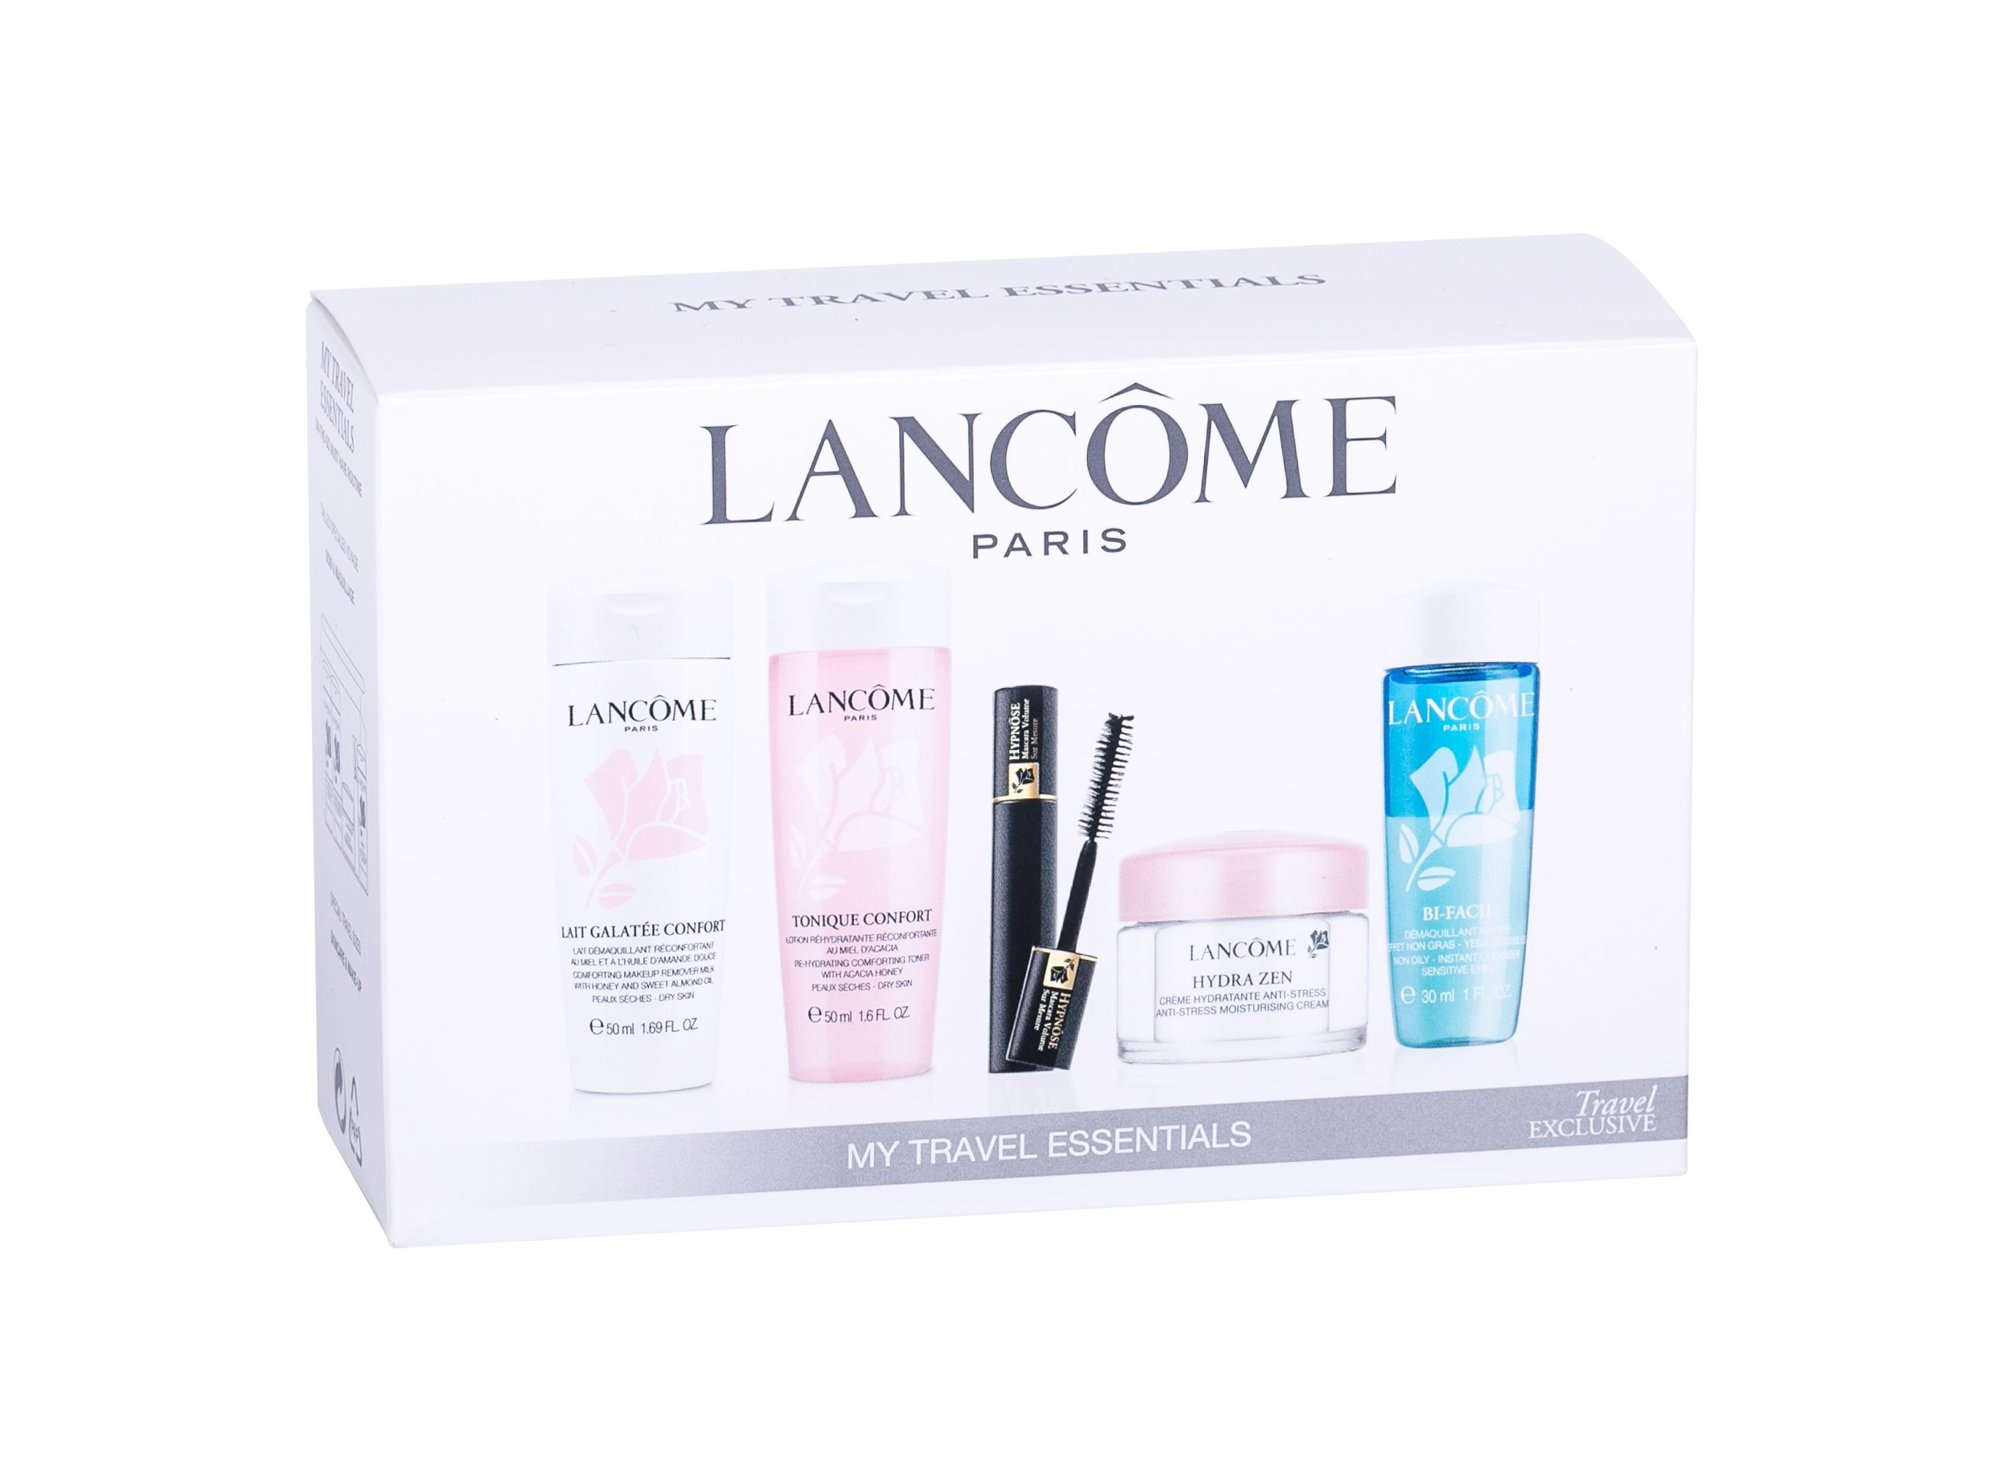 Lancôme Hydra Zen Day Cream 15ml